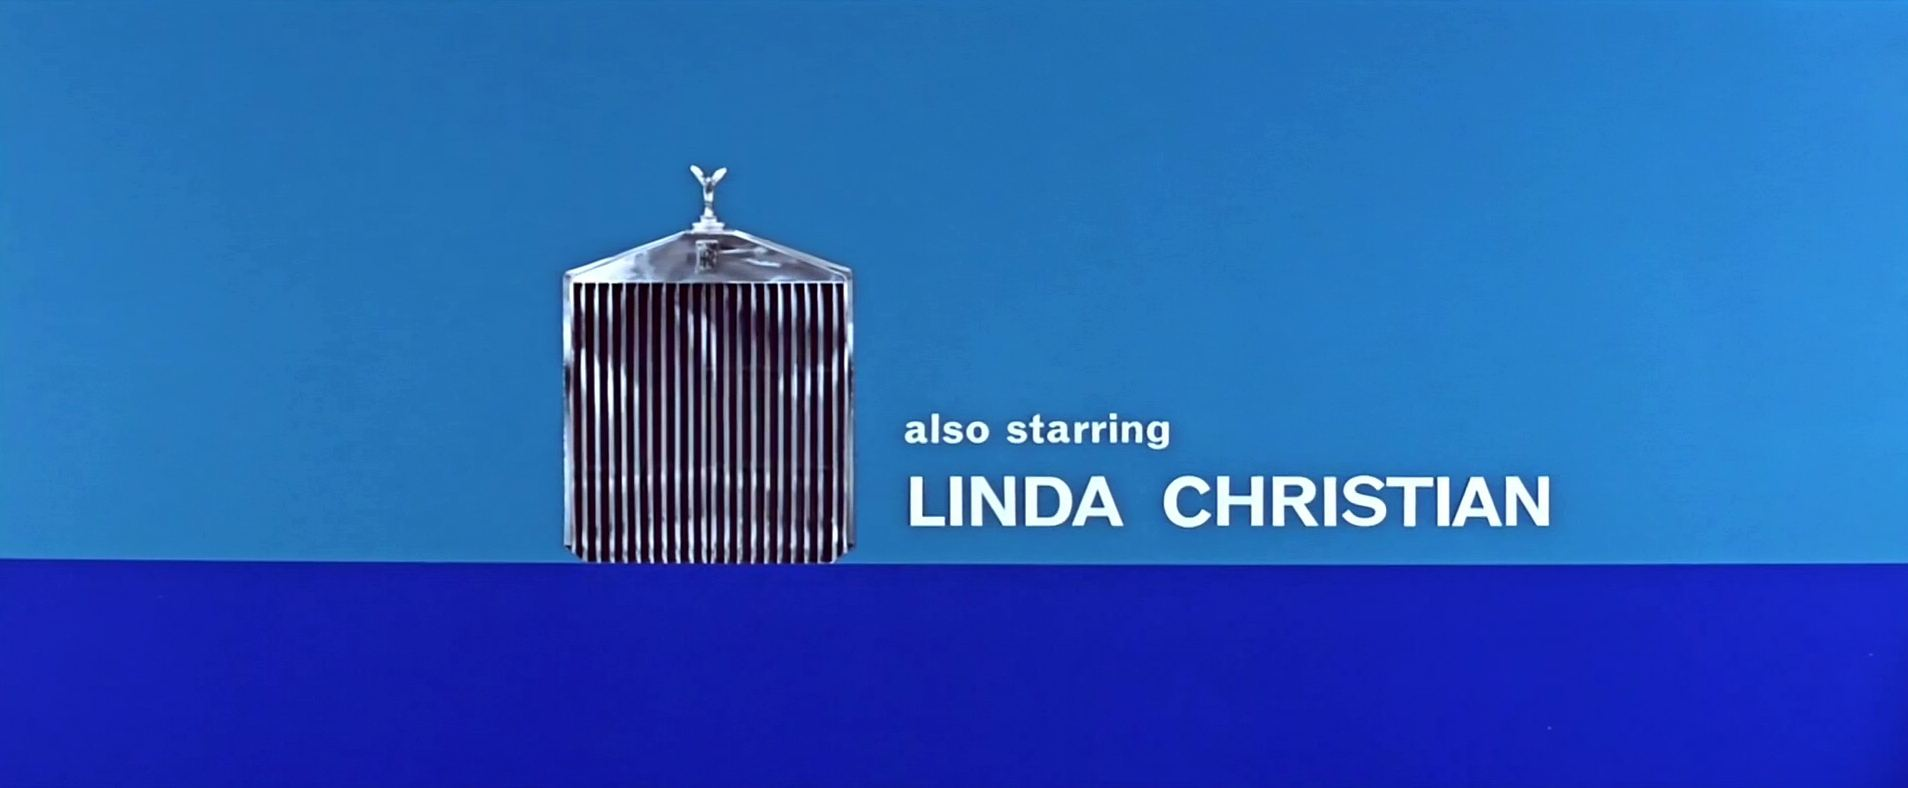 Main title from The VIPs (1963) (12). Also starring Linda Christian